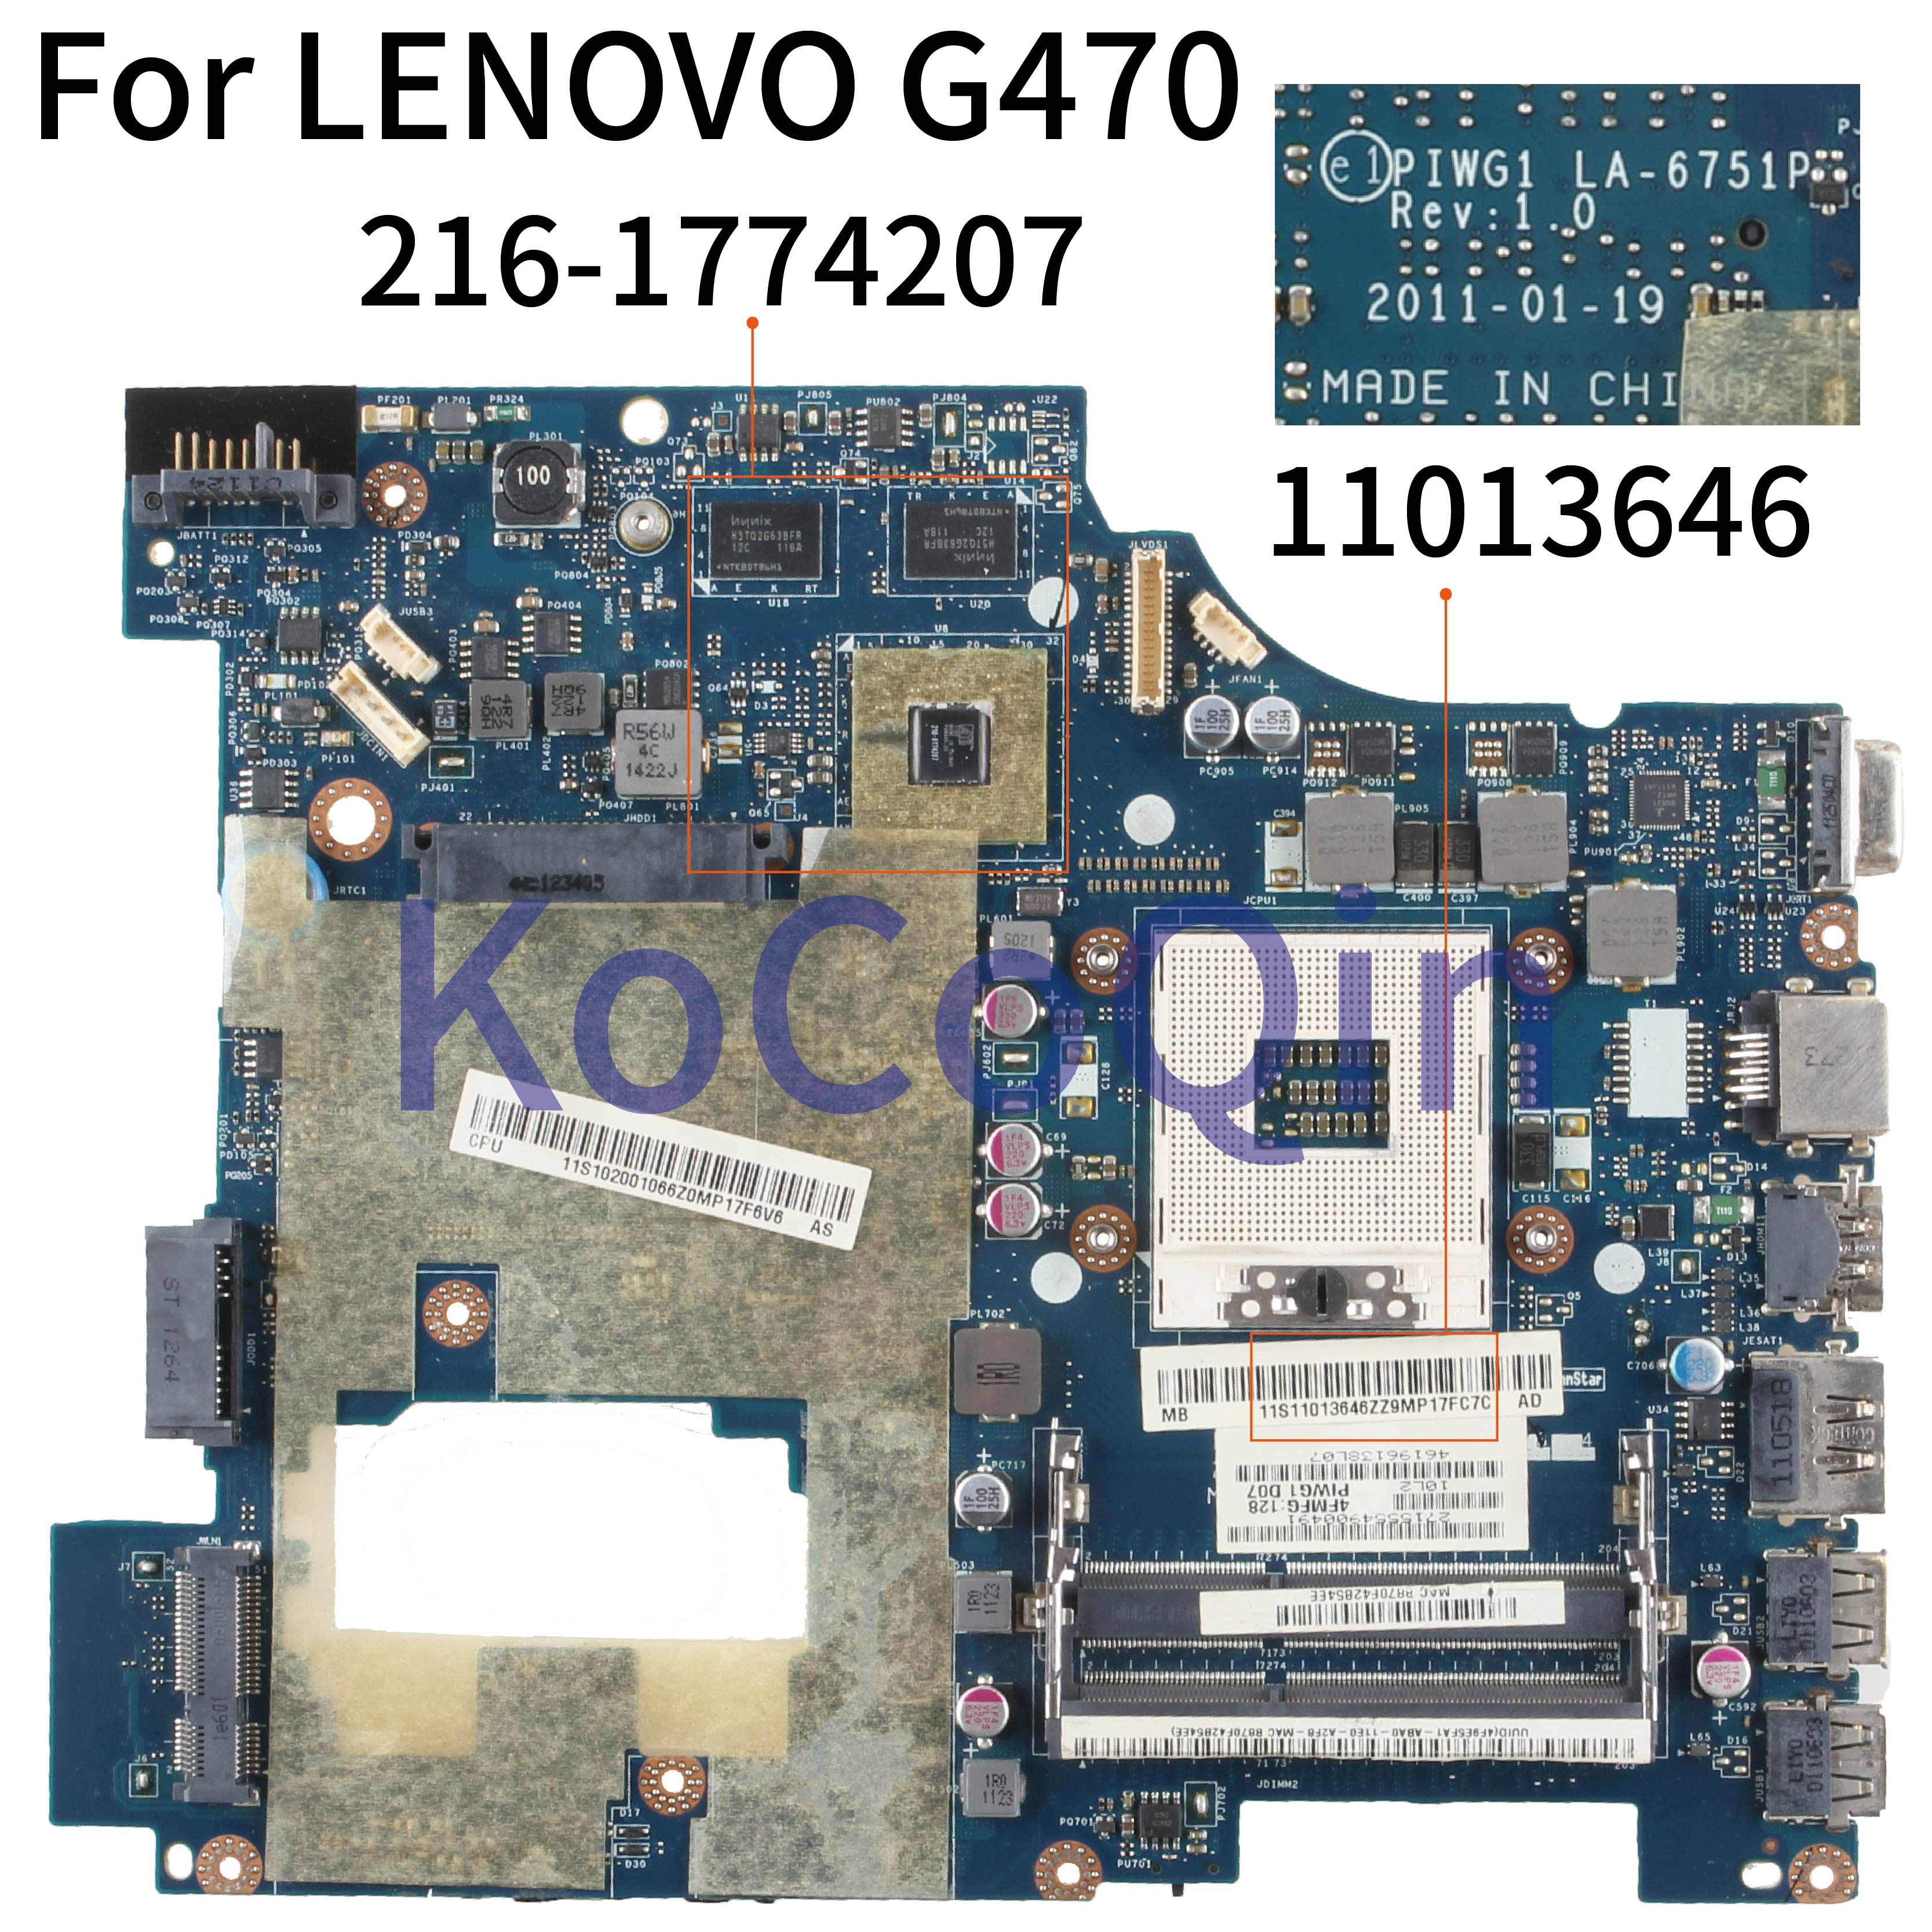 KoCoQin Laptop Motherboard For LENOVO G470 14' Inch HD6370M Mainboard 11013646 PIWG1 LA-6751P HM65 216-1774207